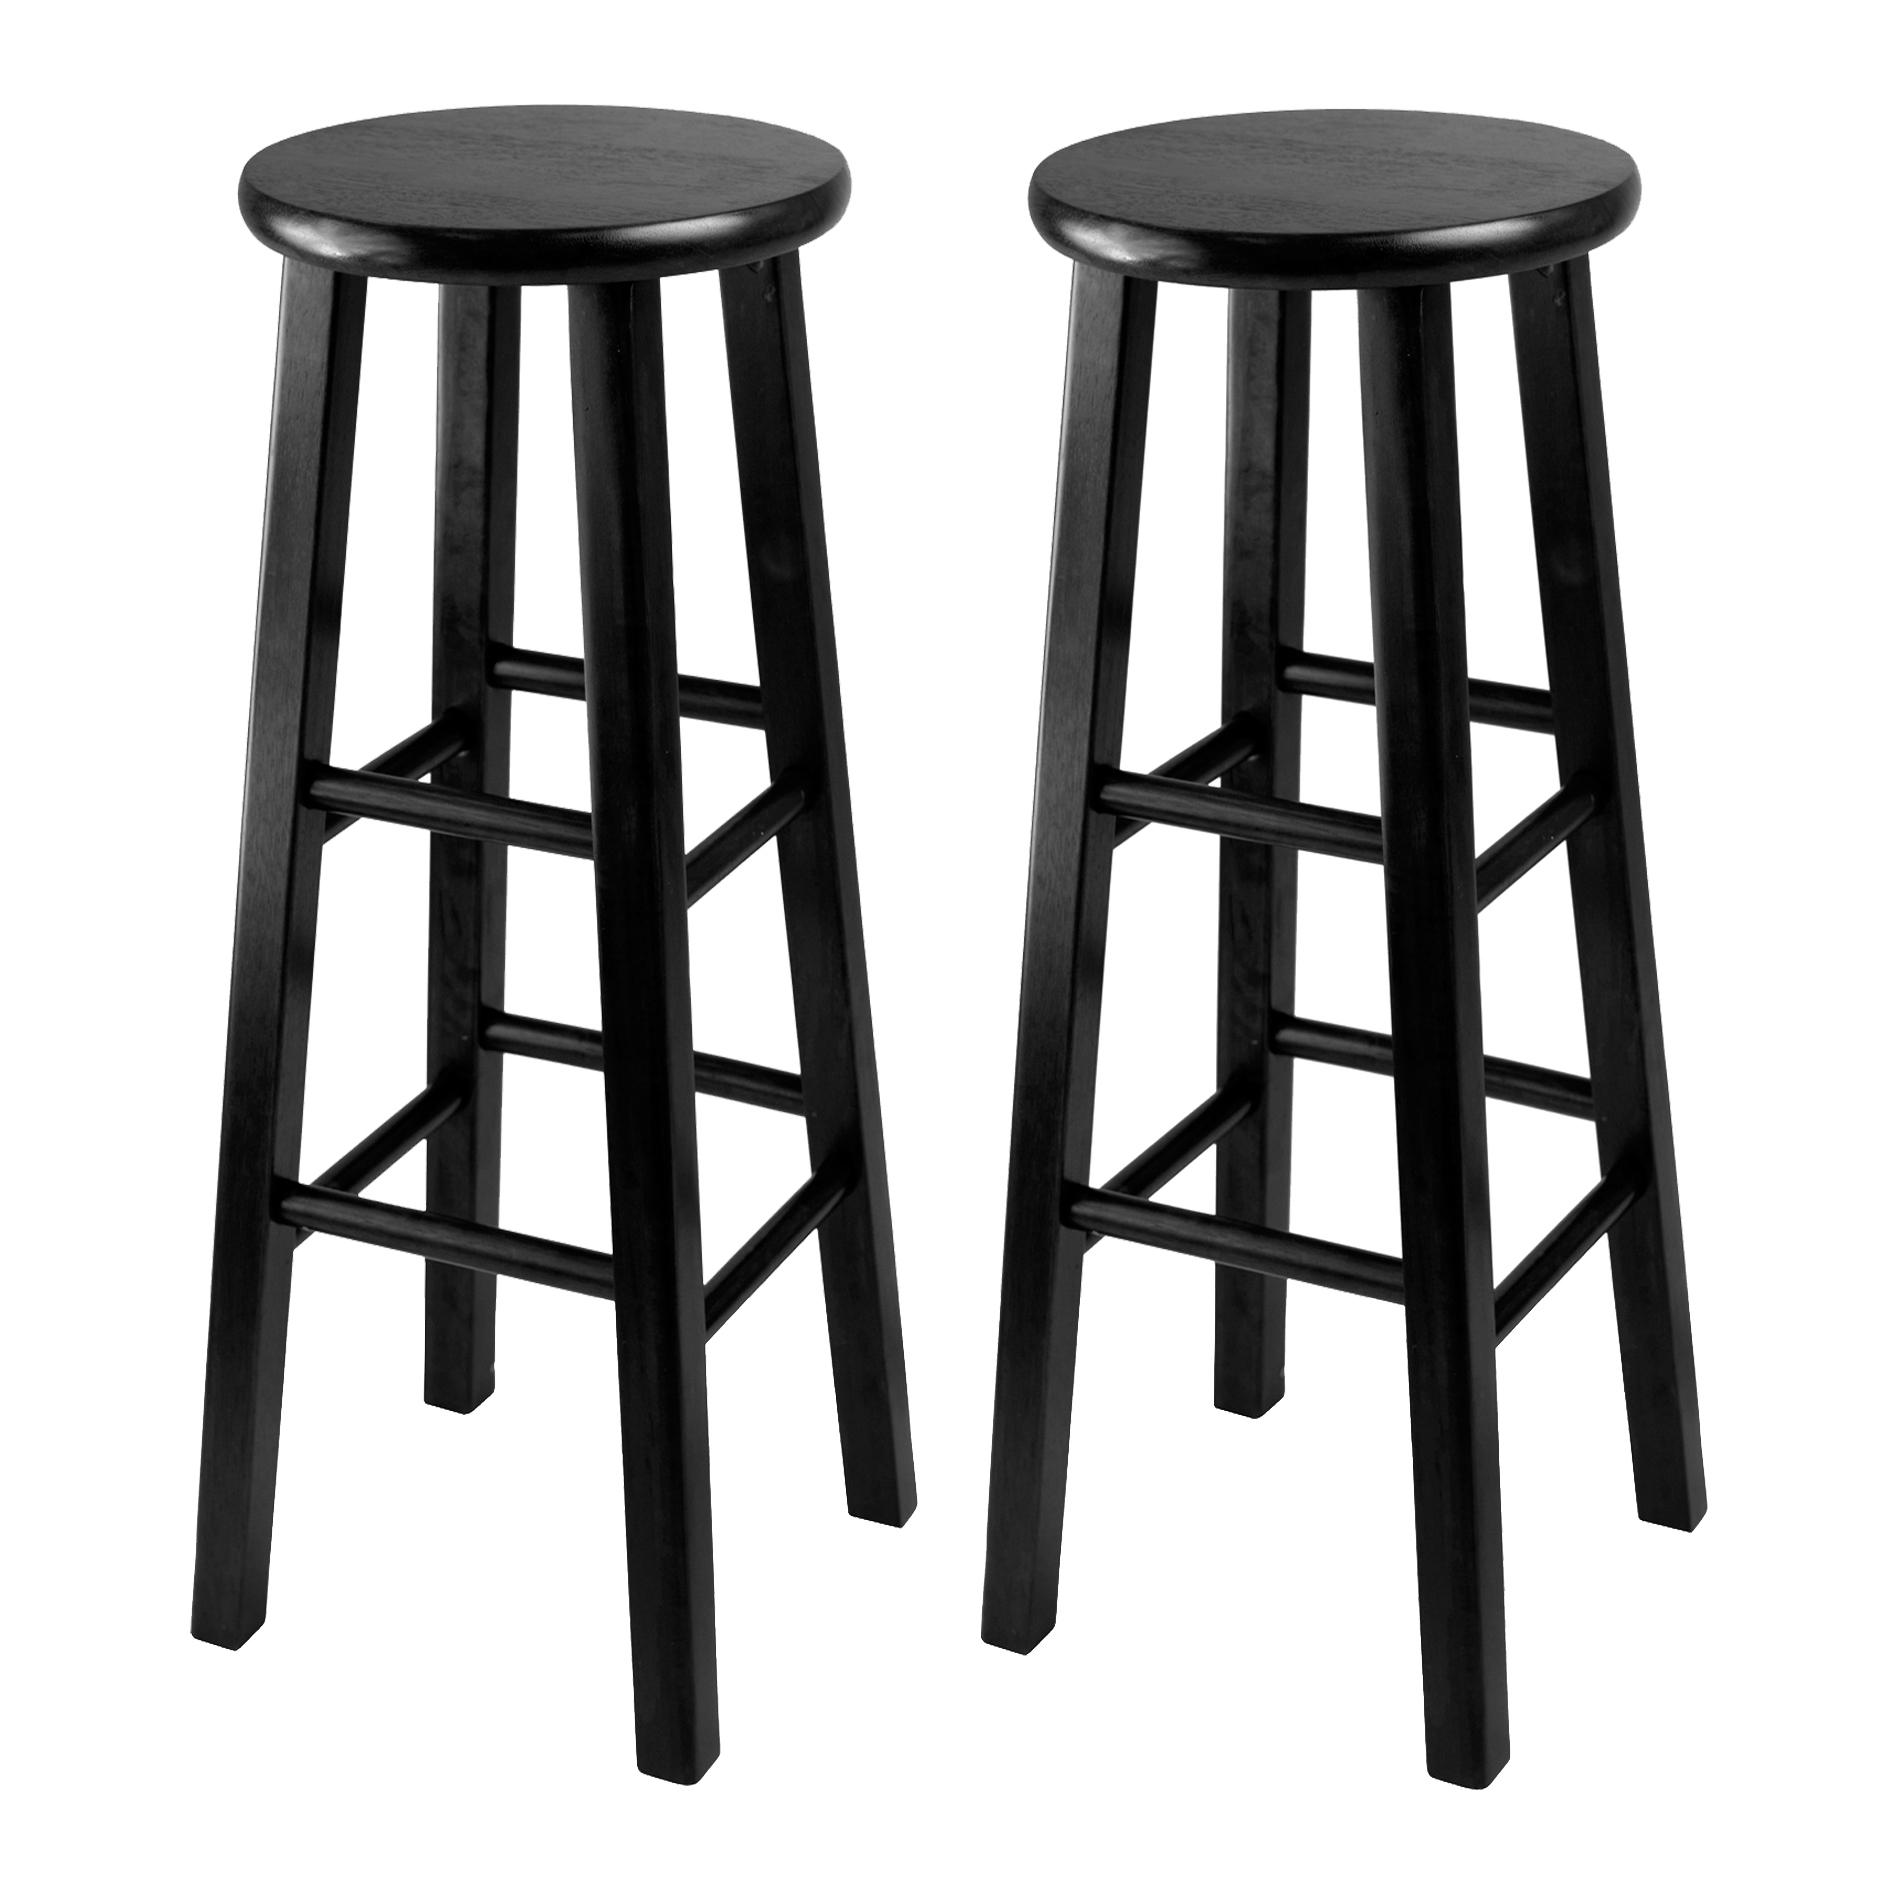 Amazon Winsome 29 Inch Square Leg Bar Stool Black Set of 2